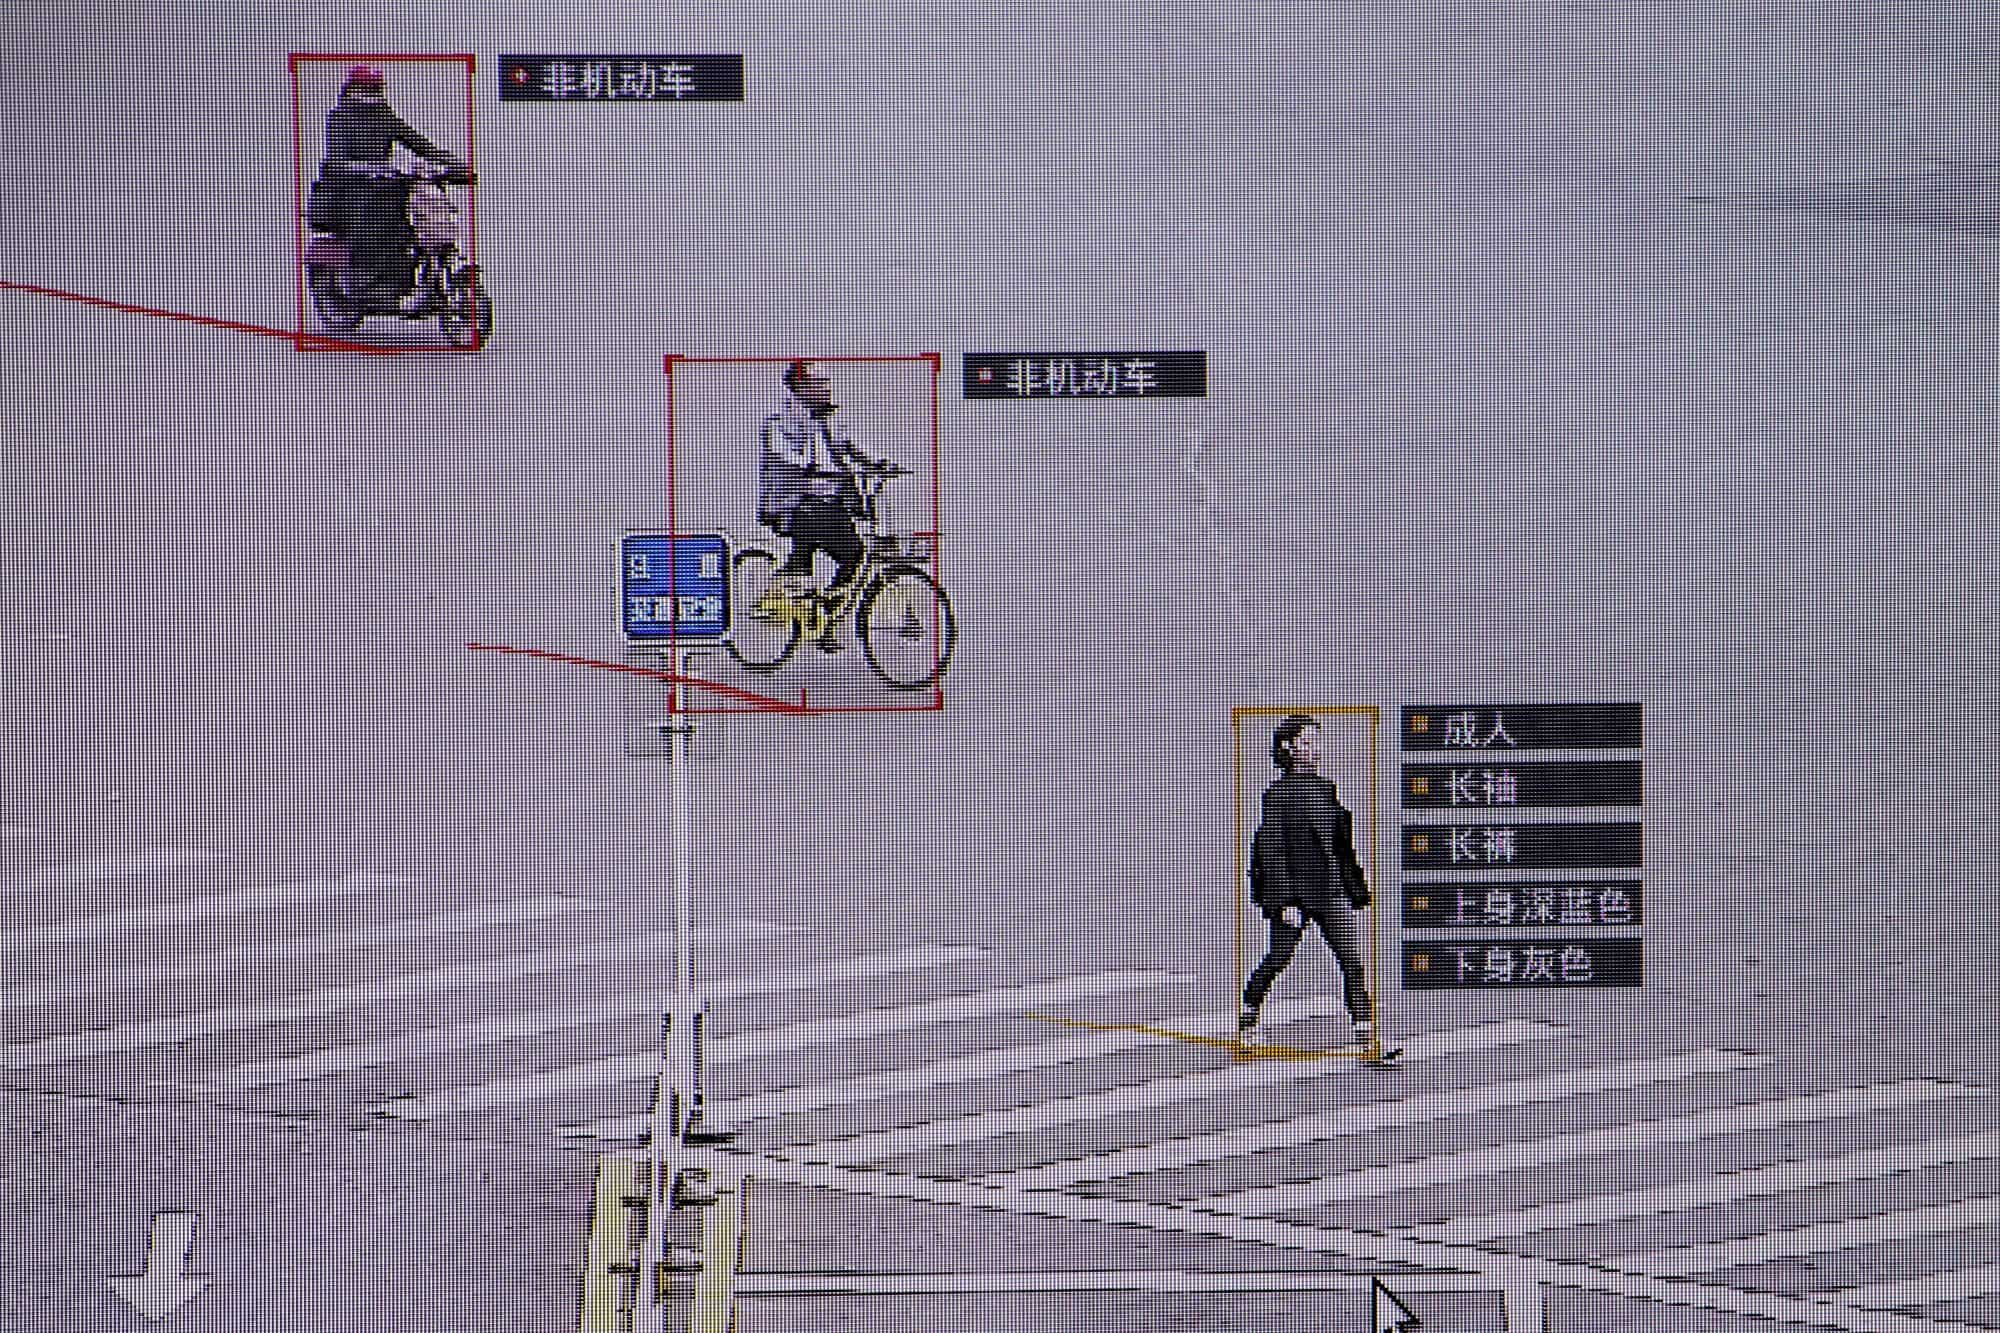 Surveillance software identifies details about people and vehicles crossing a street, in October 2017. Under Xi Jinping, China has built a massive domestic surveillance state and is beginning to export its brand of high-tech authoritarianism.